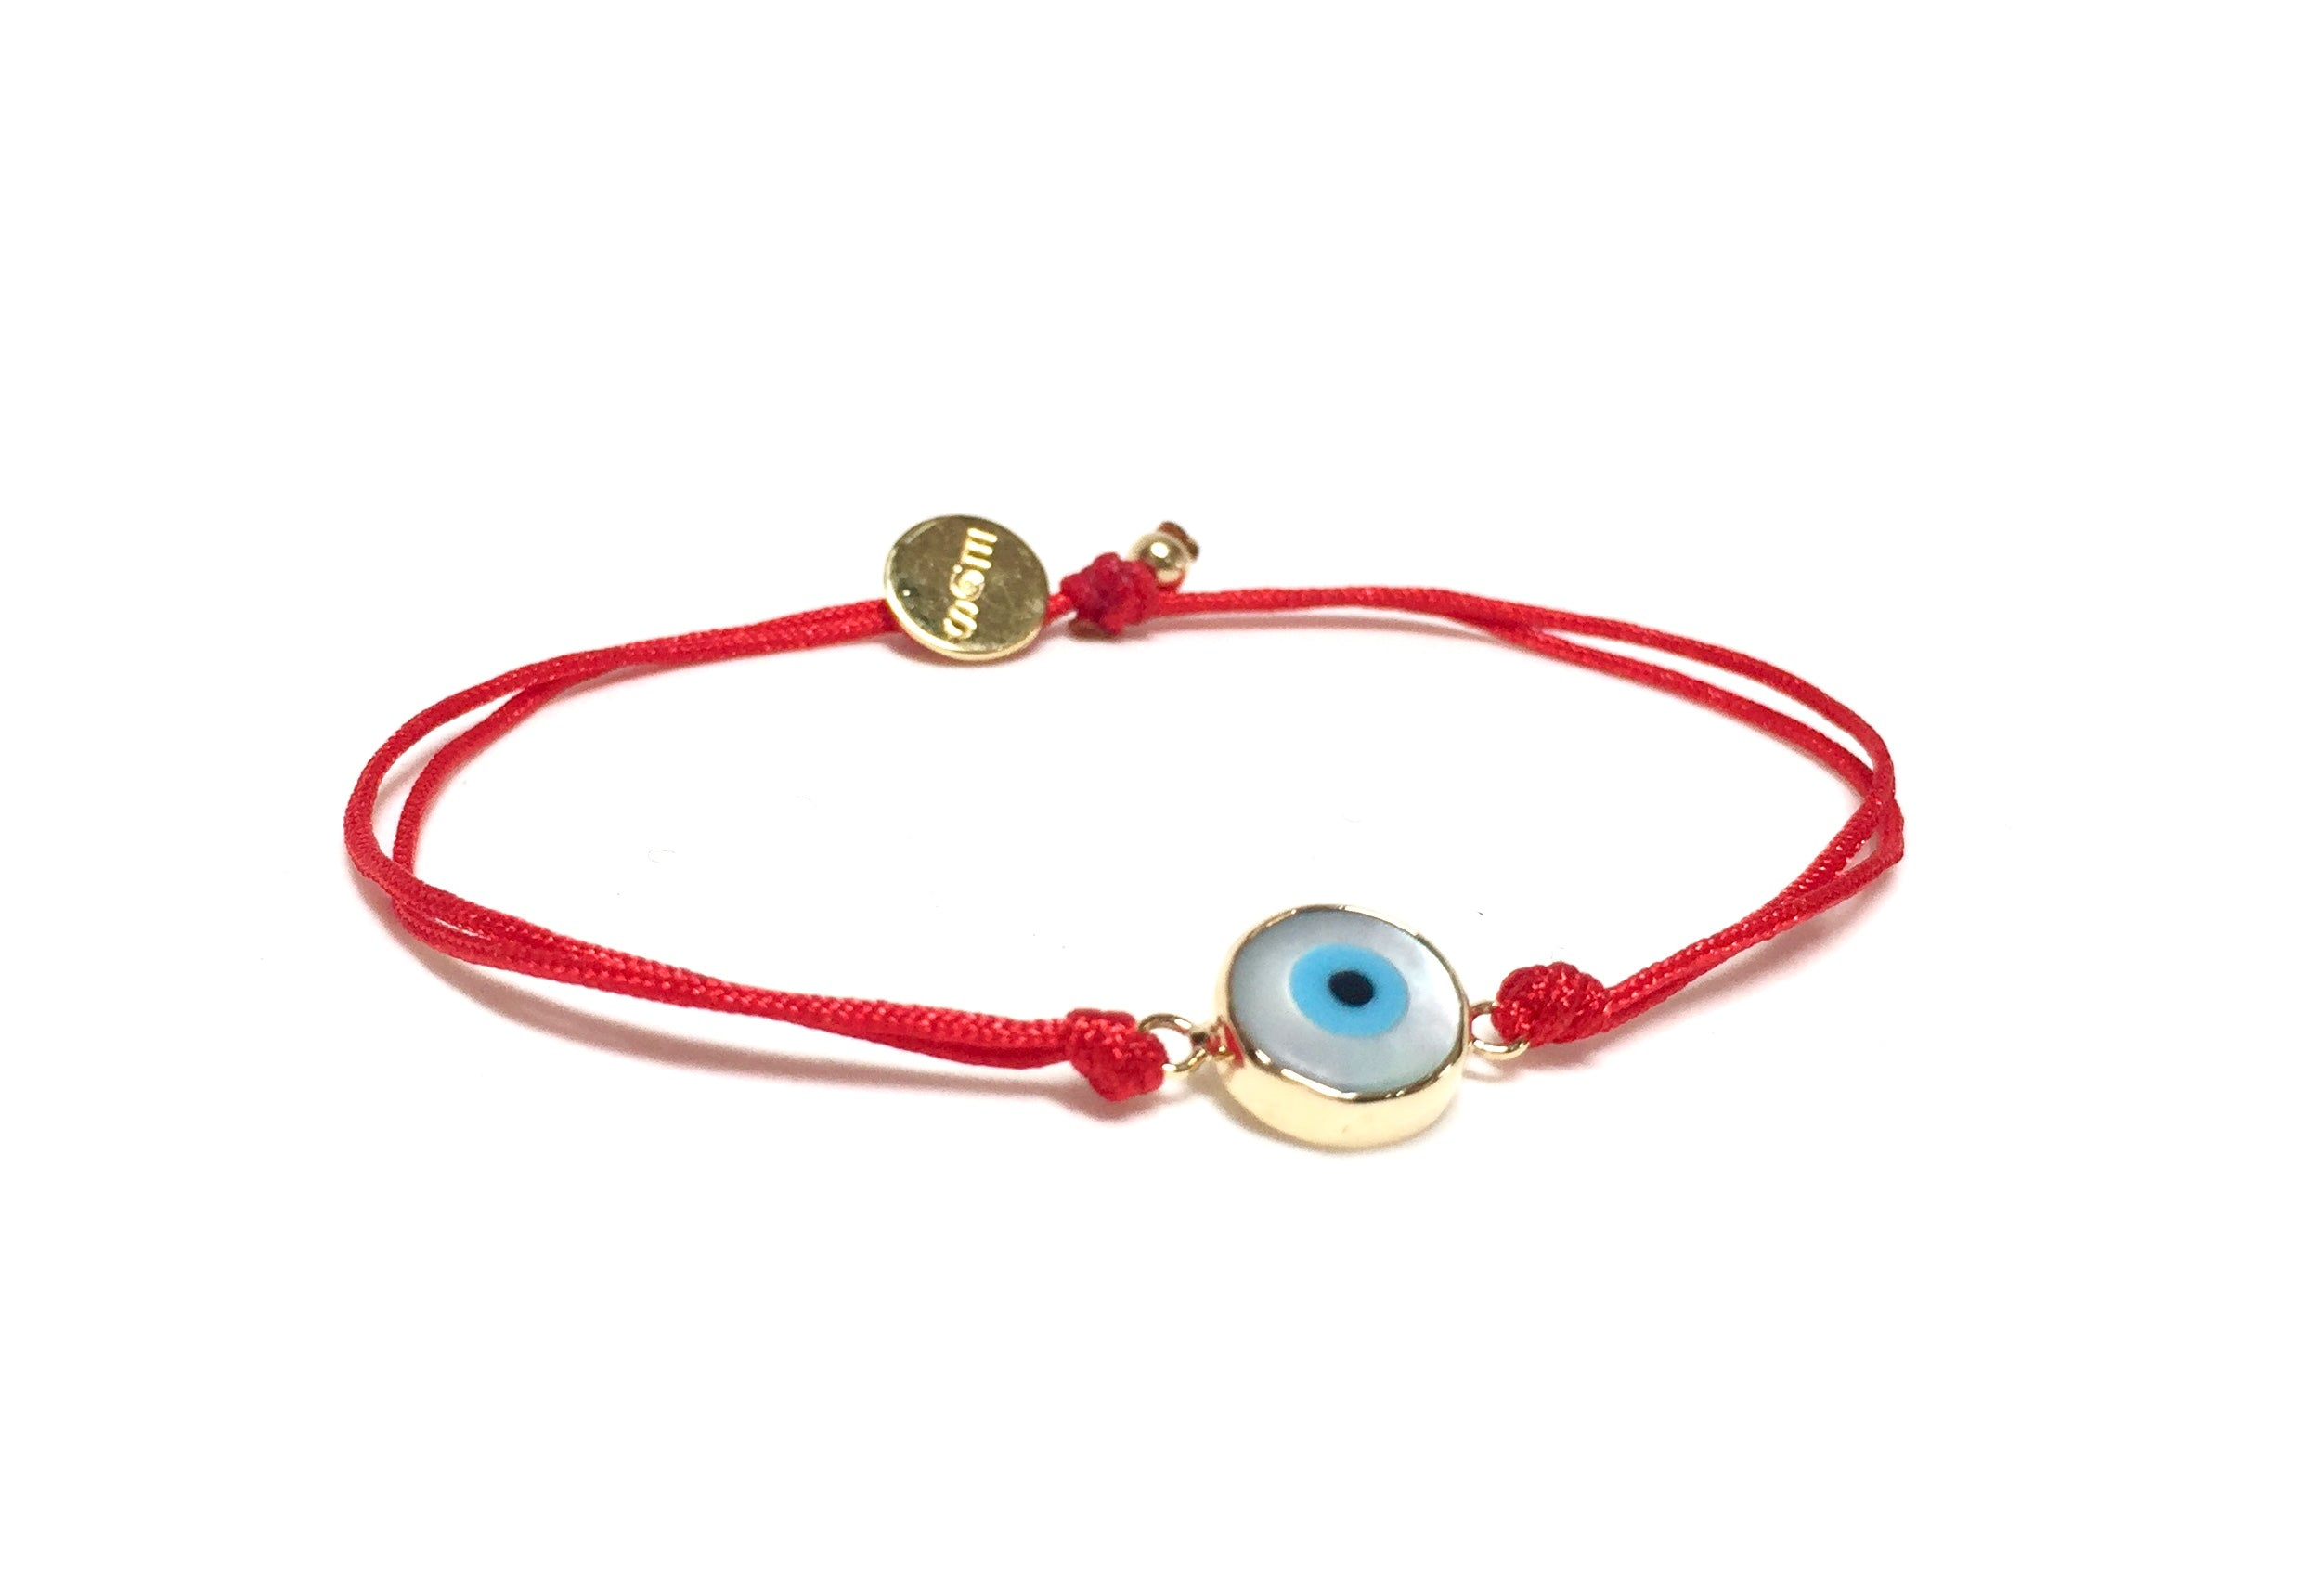 eye women red pearl evil anklets bracelets bracelet pin anklet jewelry ankle string for